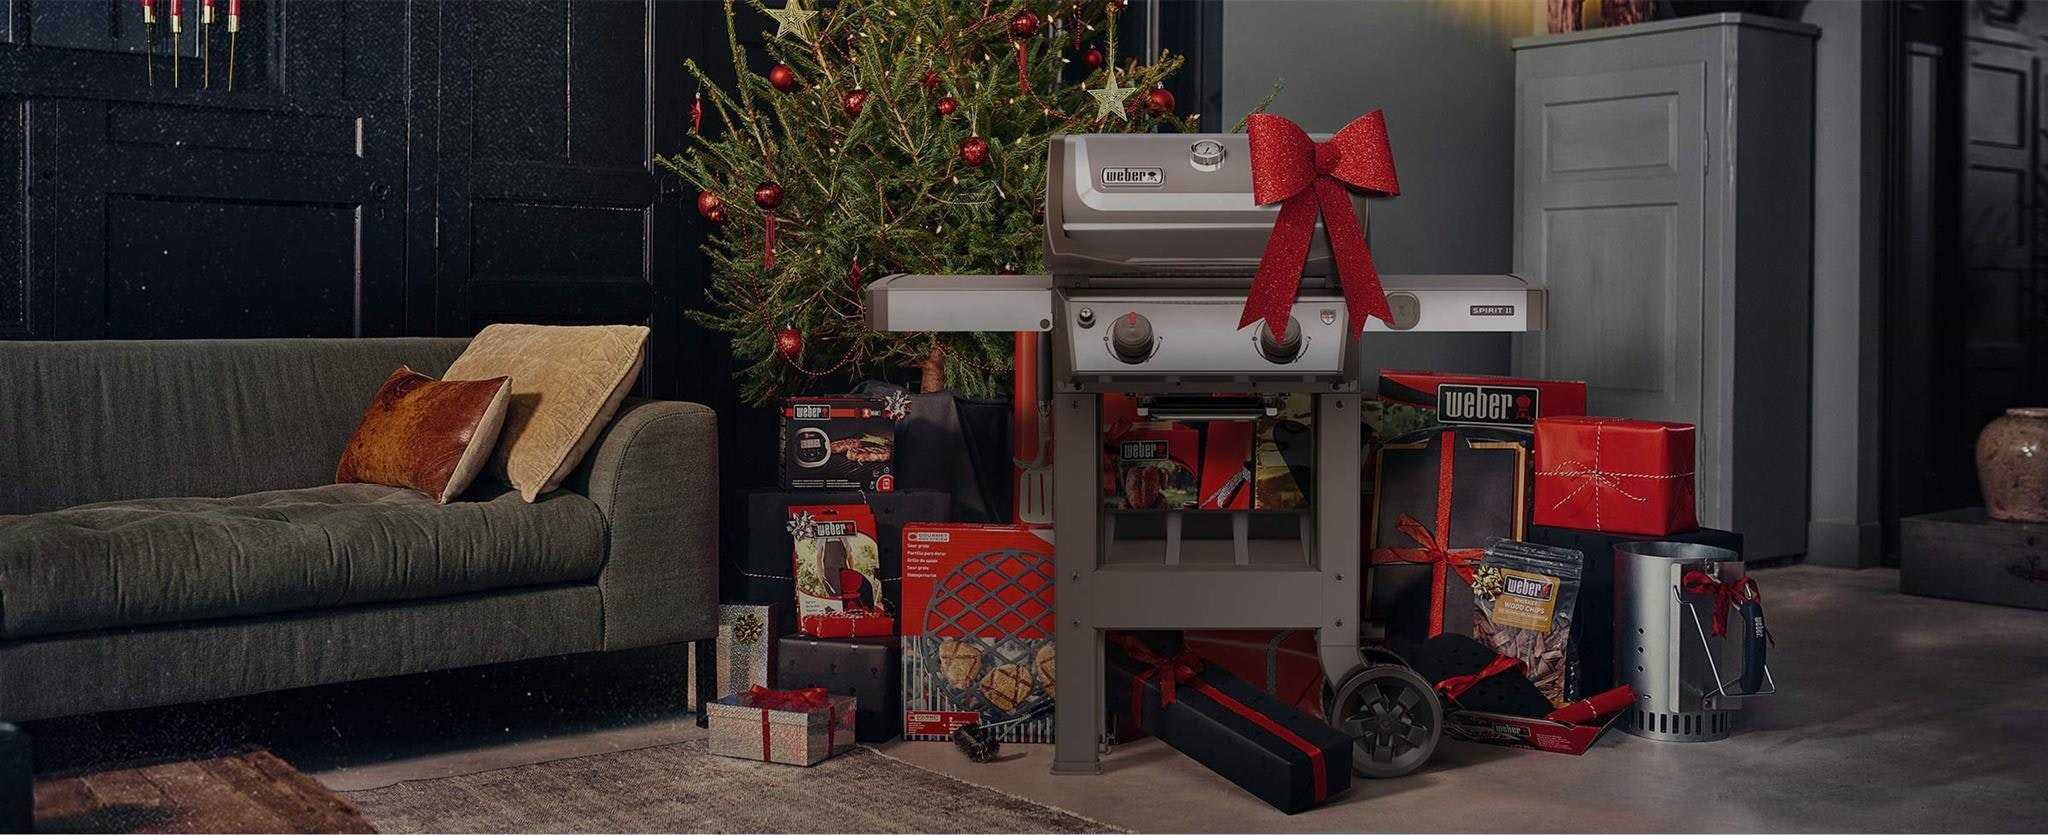 181010 Winter Griller 2019 Gifting Page Heroteaser De